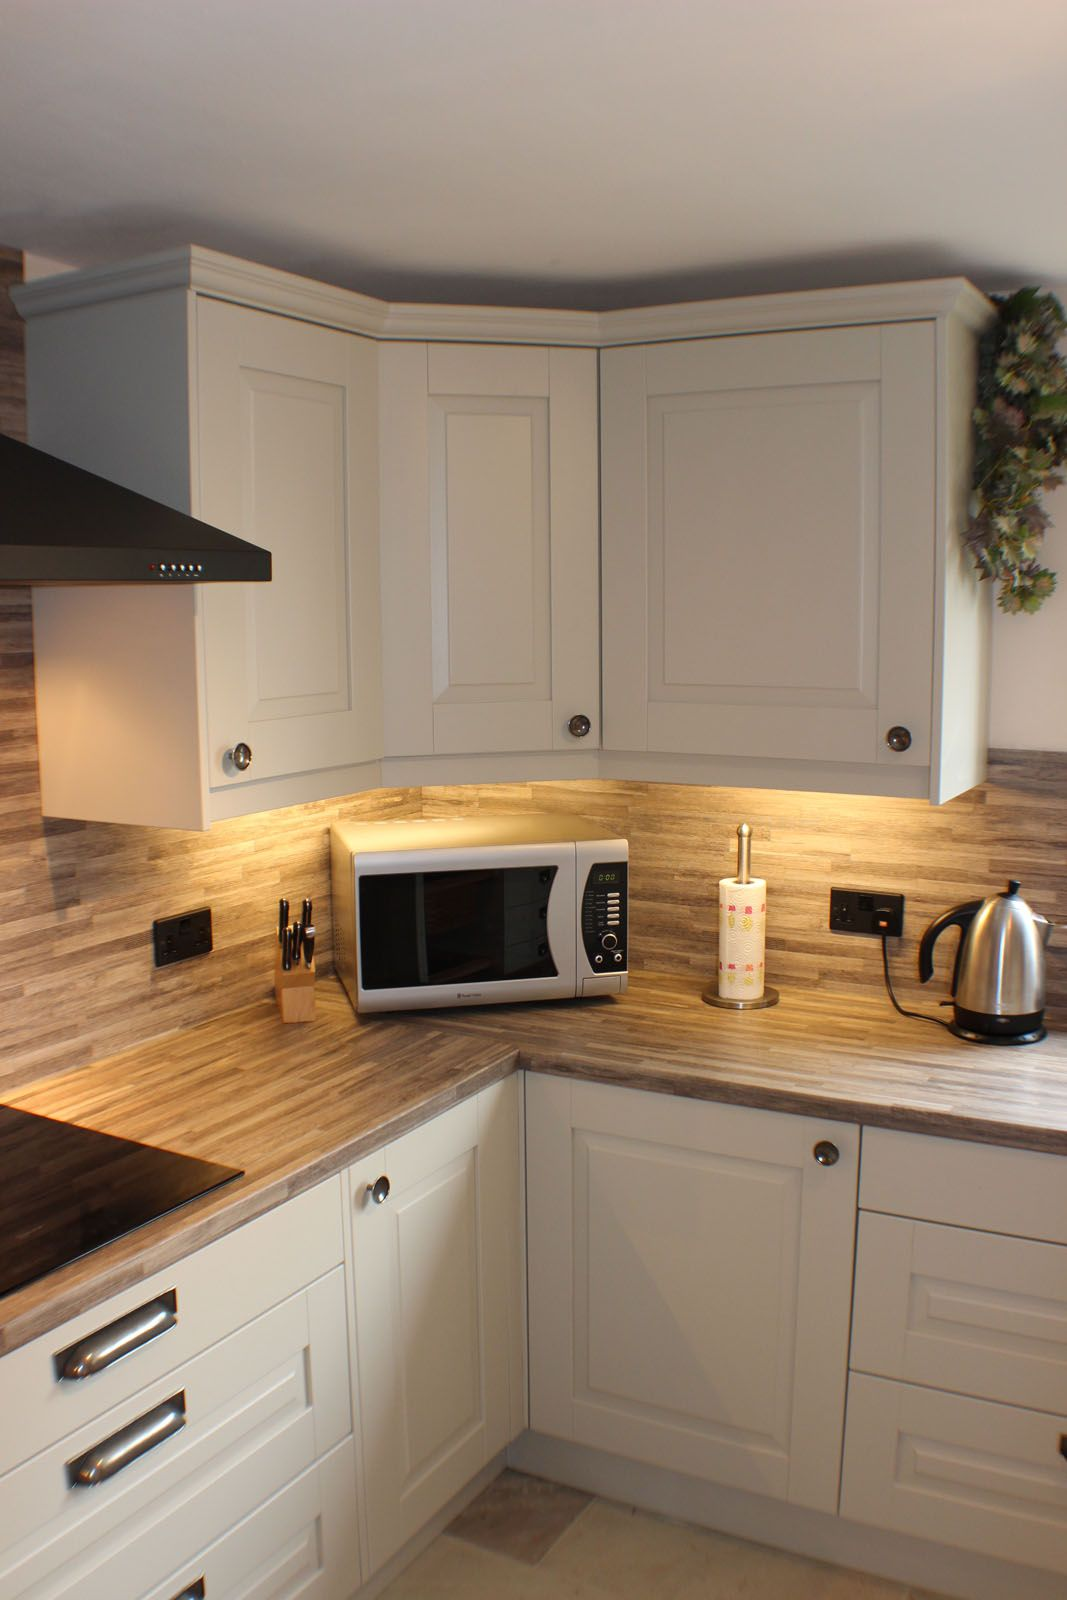 Cheap Kitchens Backsplash Tiles Kitchen Discount For Sale Online Cabinets Mr Mrs Travis Thirsk And Another Successfully Fitted